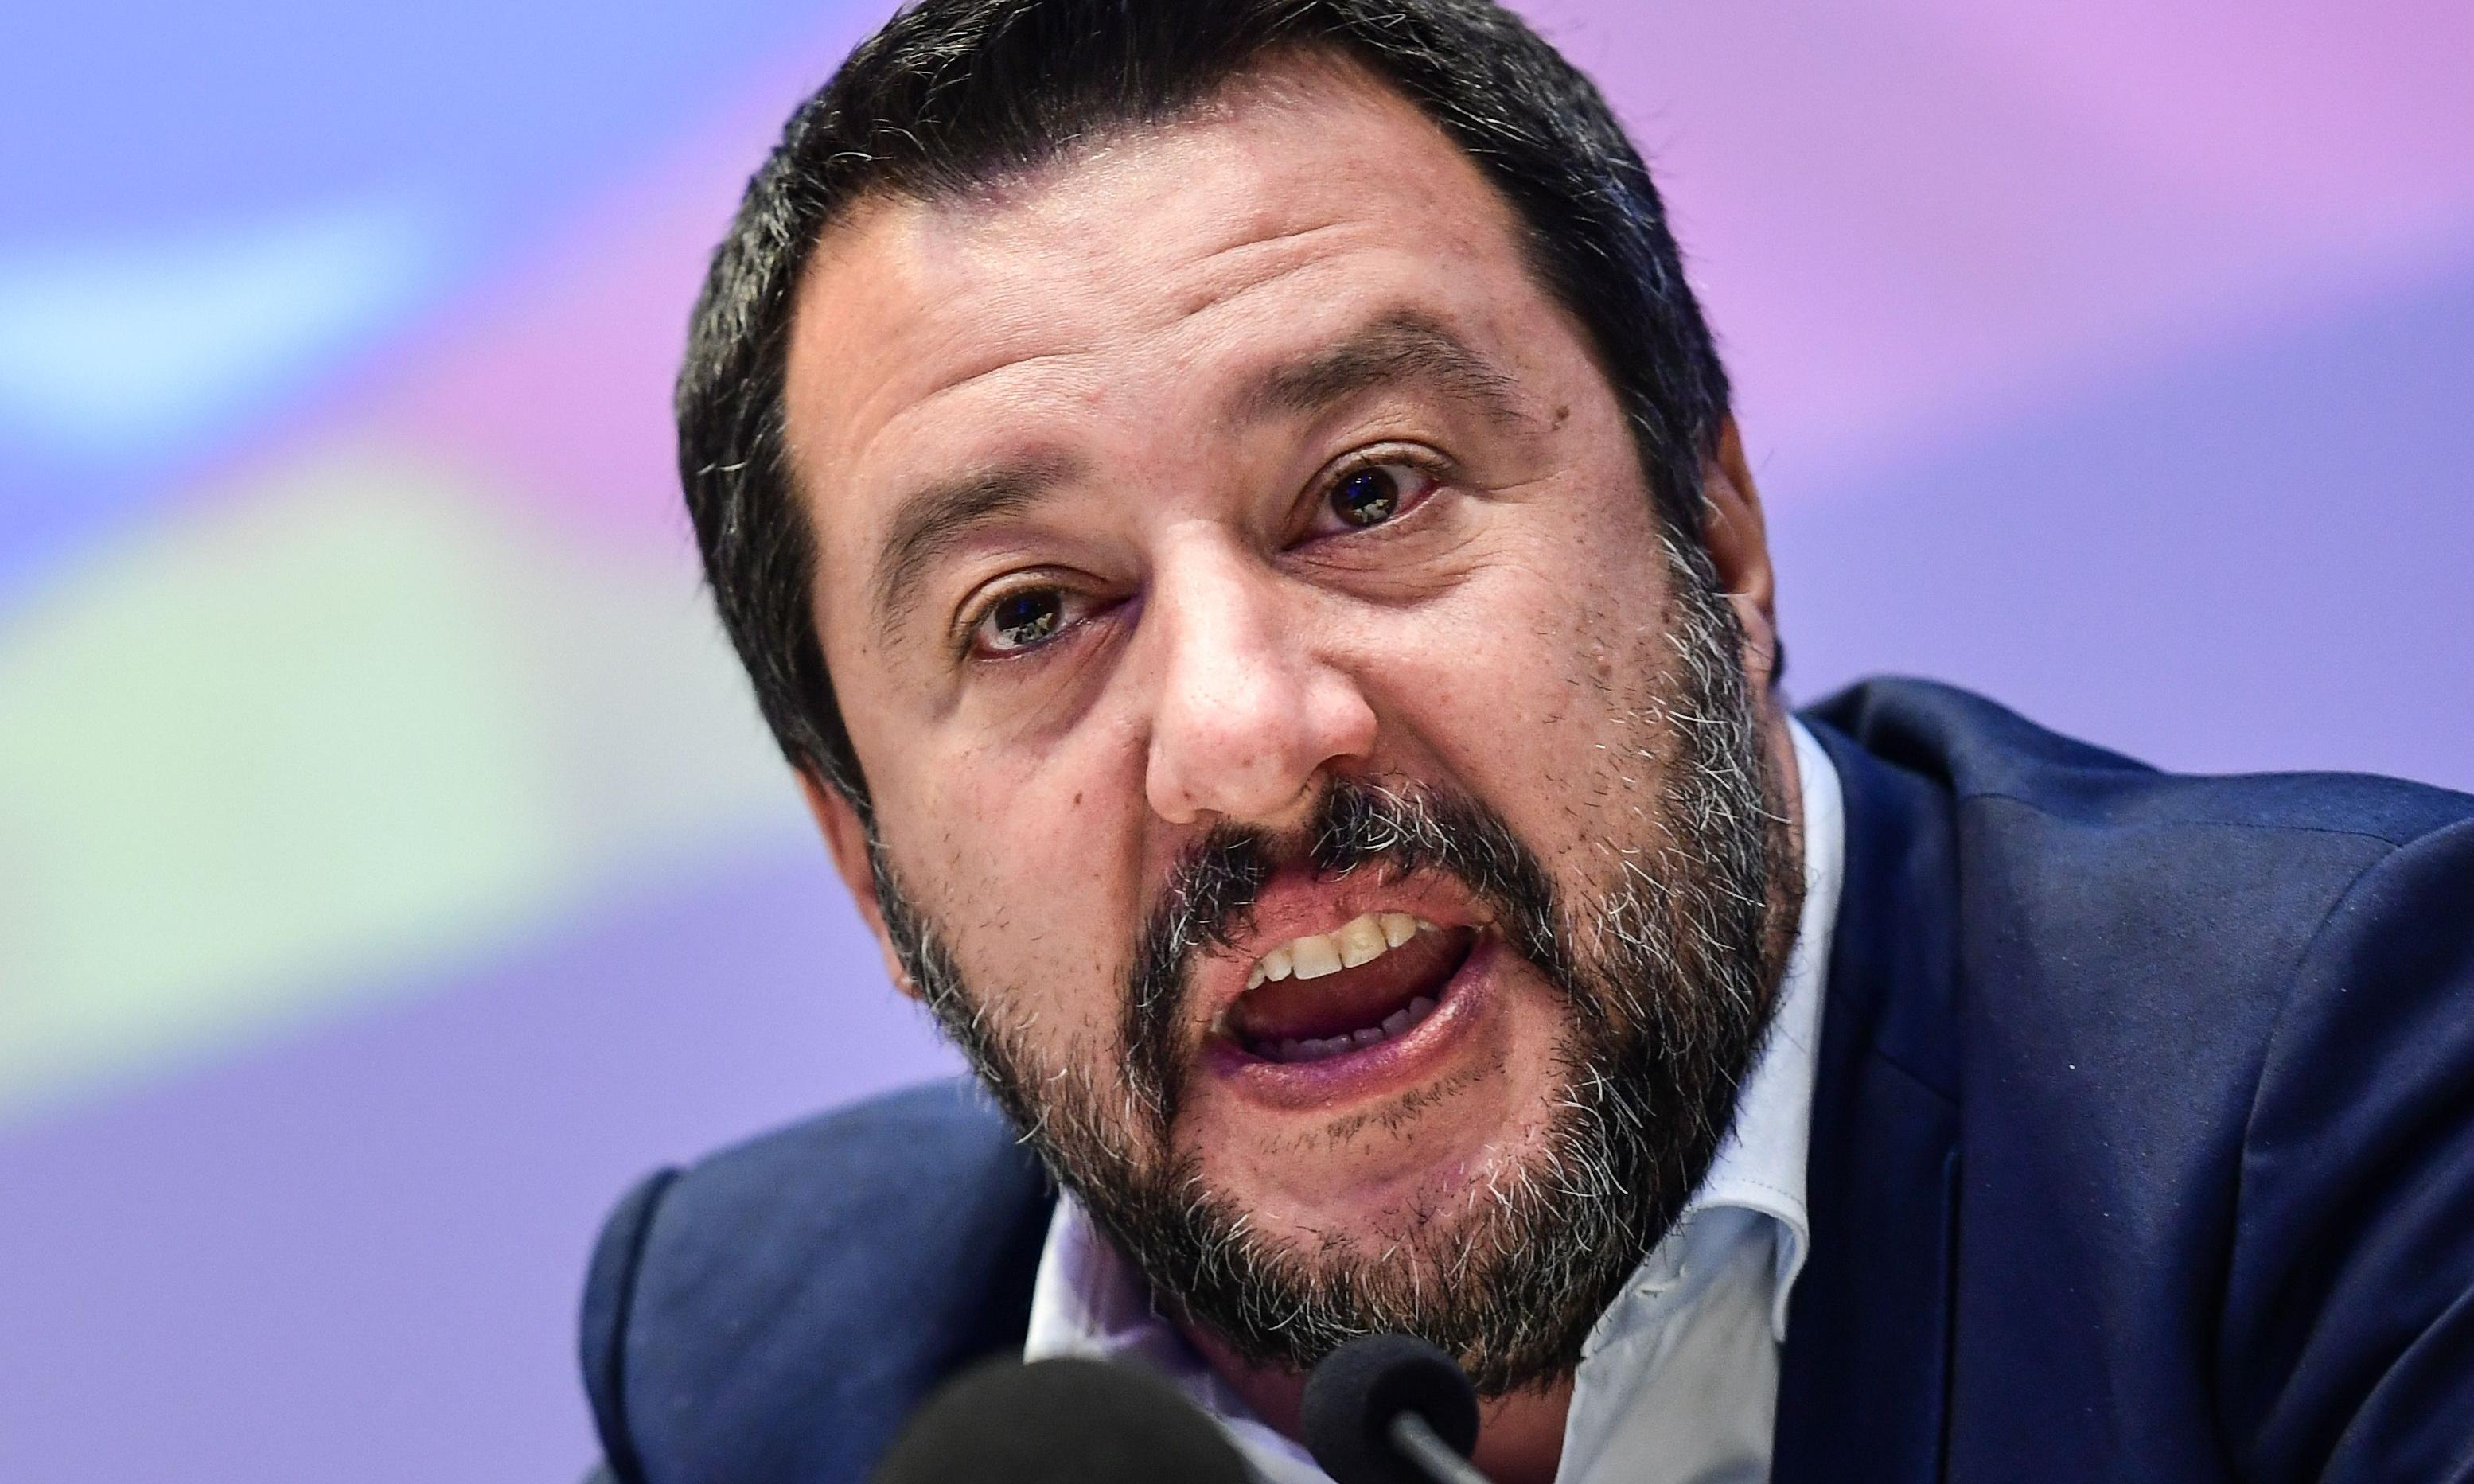 Salvini 'crossed red line' with refugee boat policy, says military